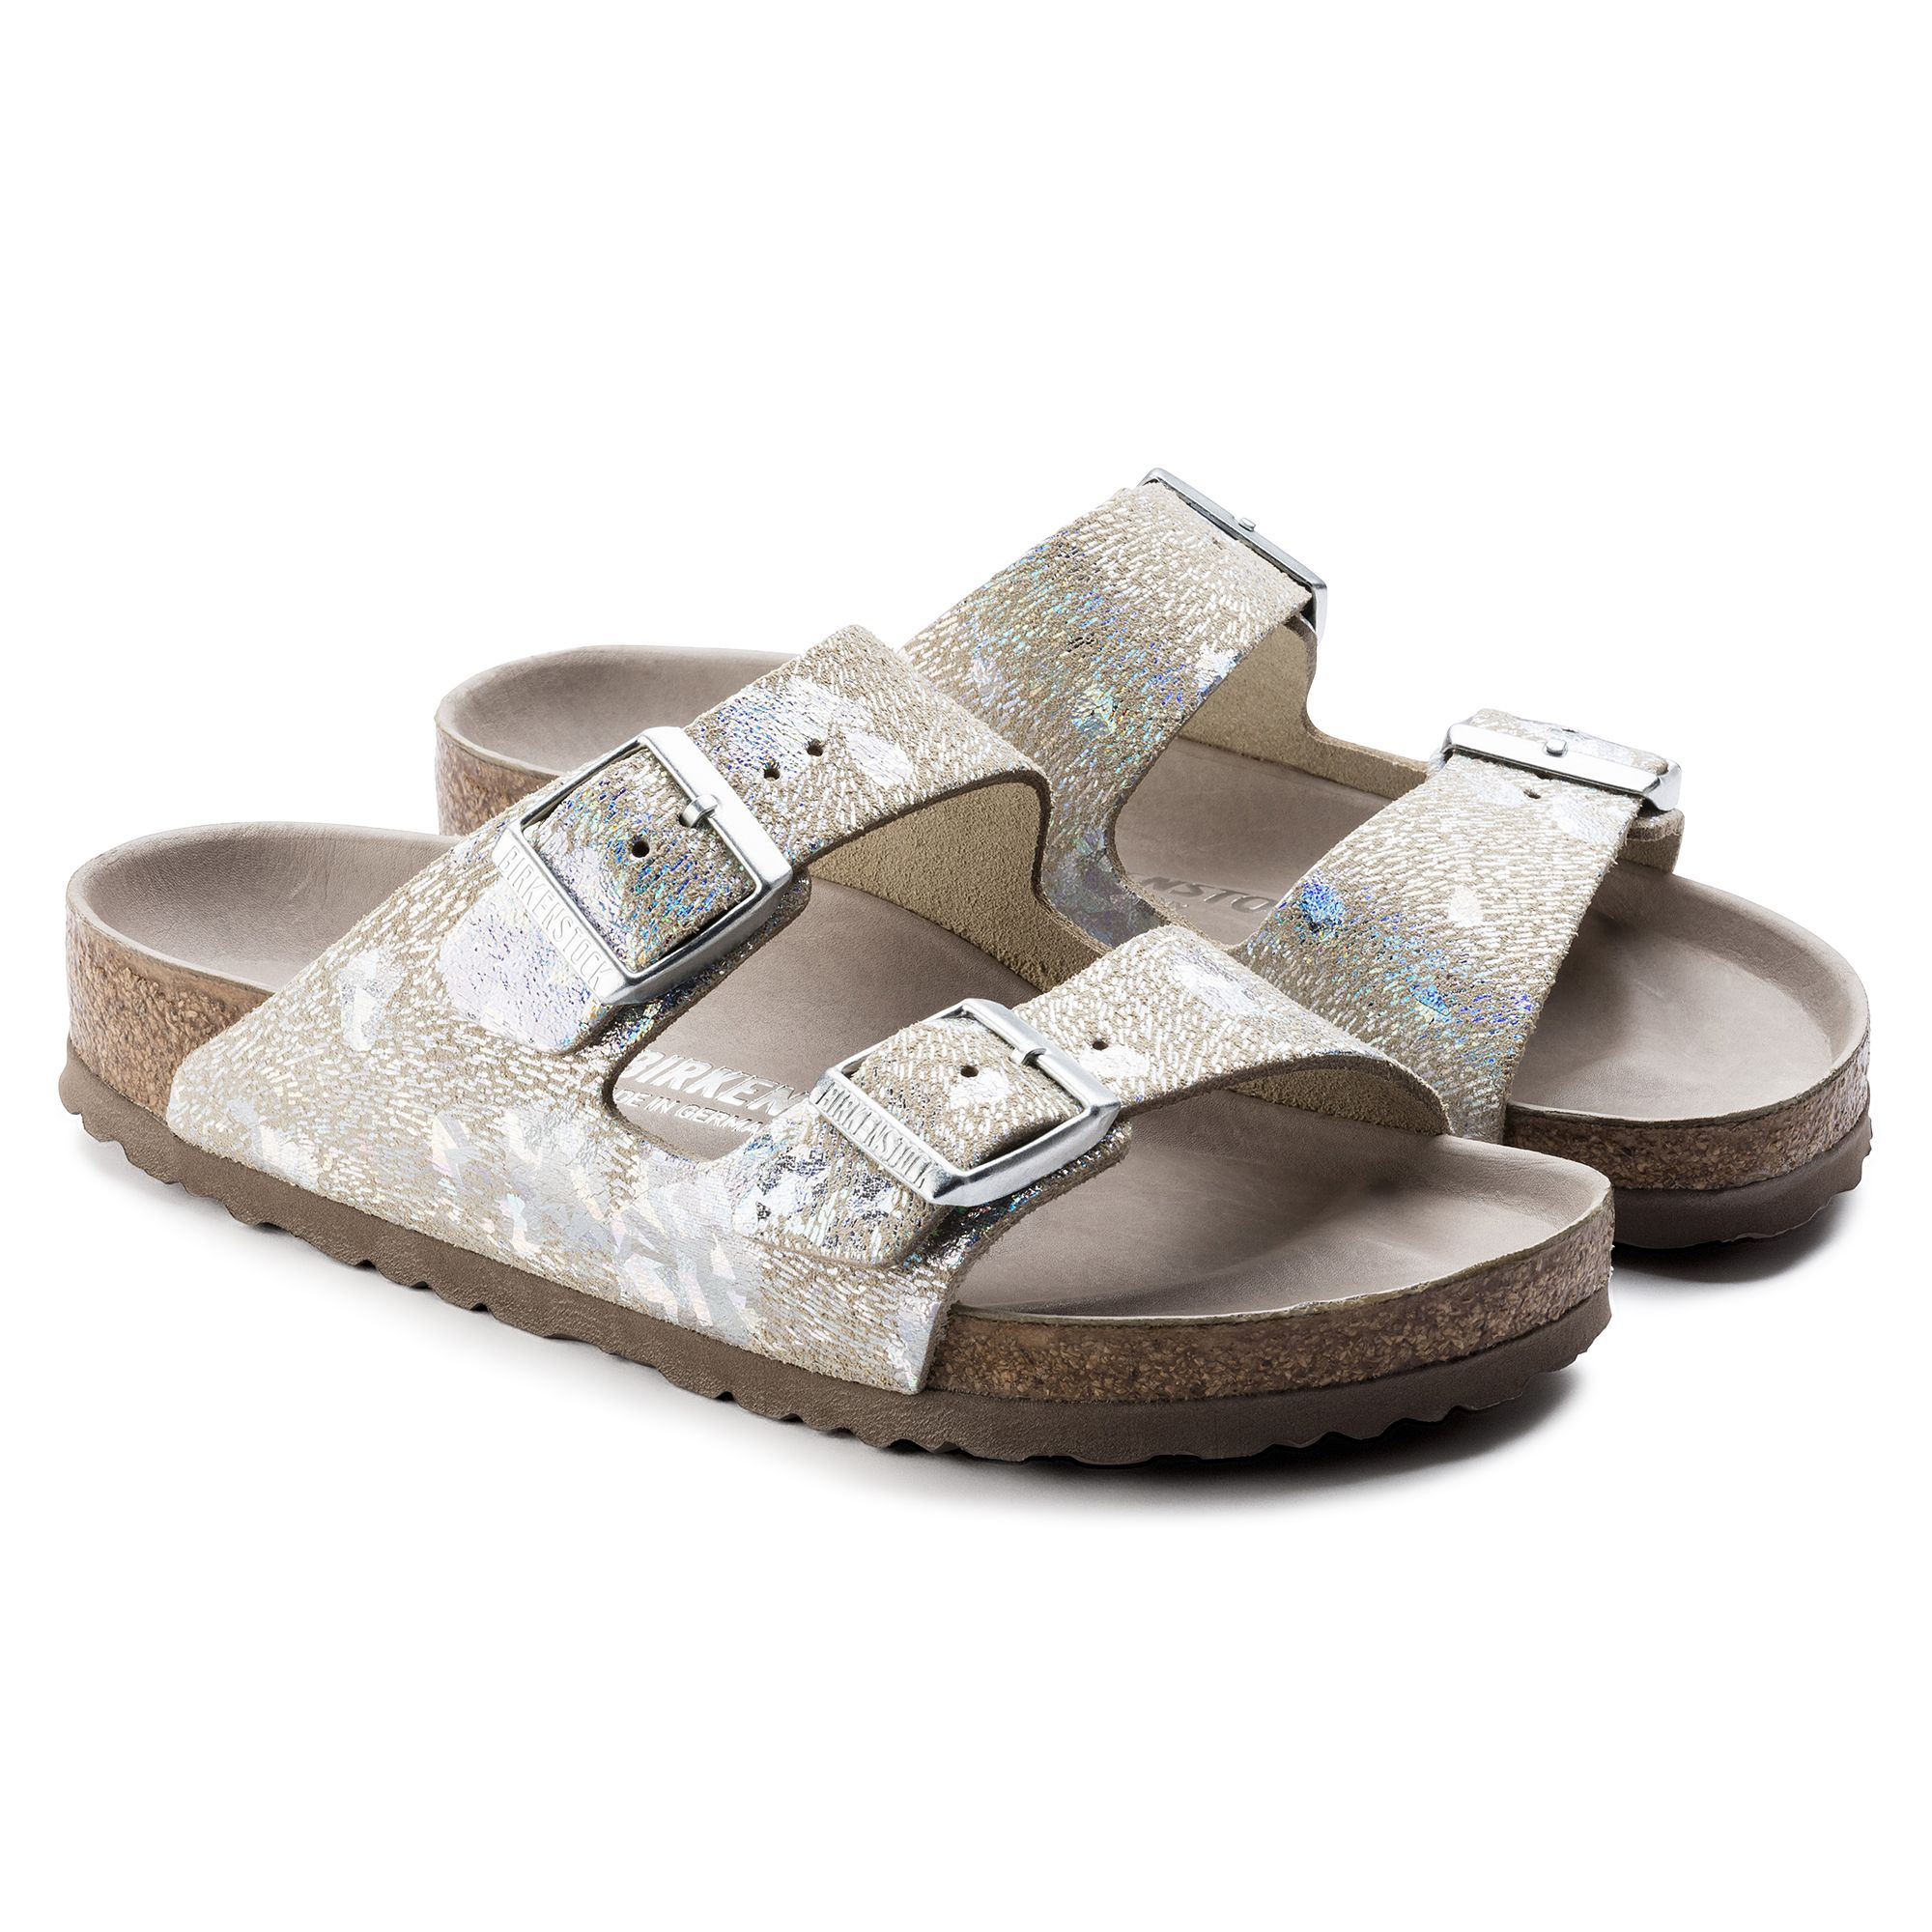 b2dcafd8f0f6 Arizona Natural Leather Exquisite Spotted Metallic Silver